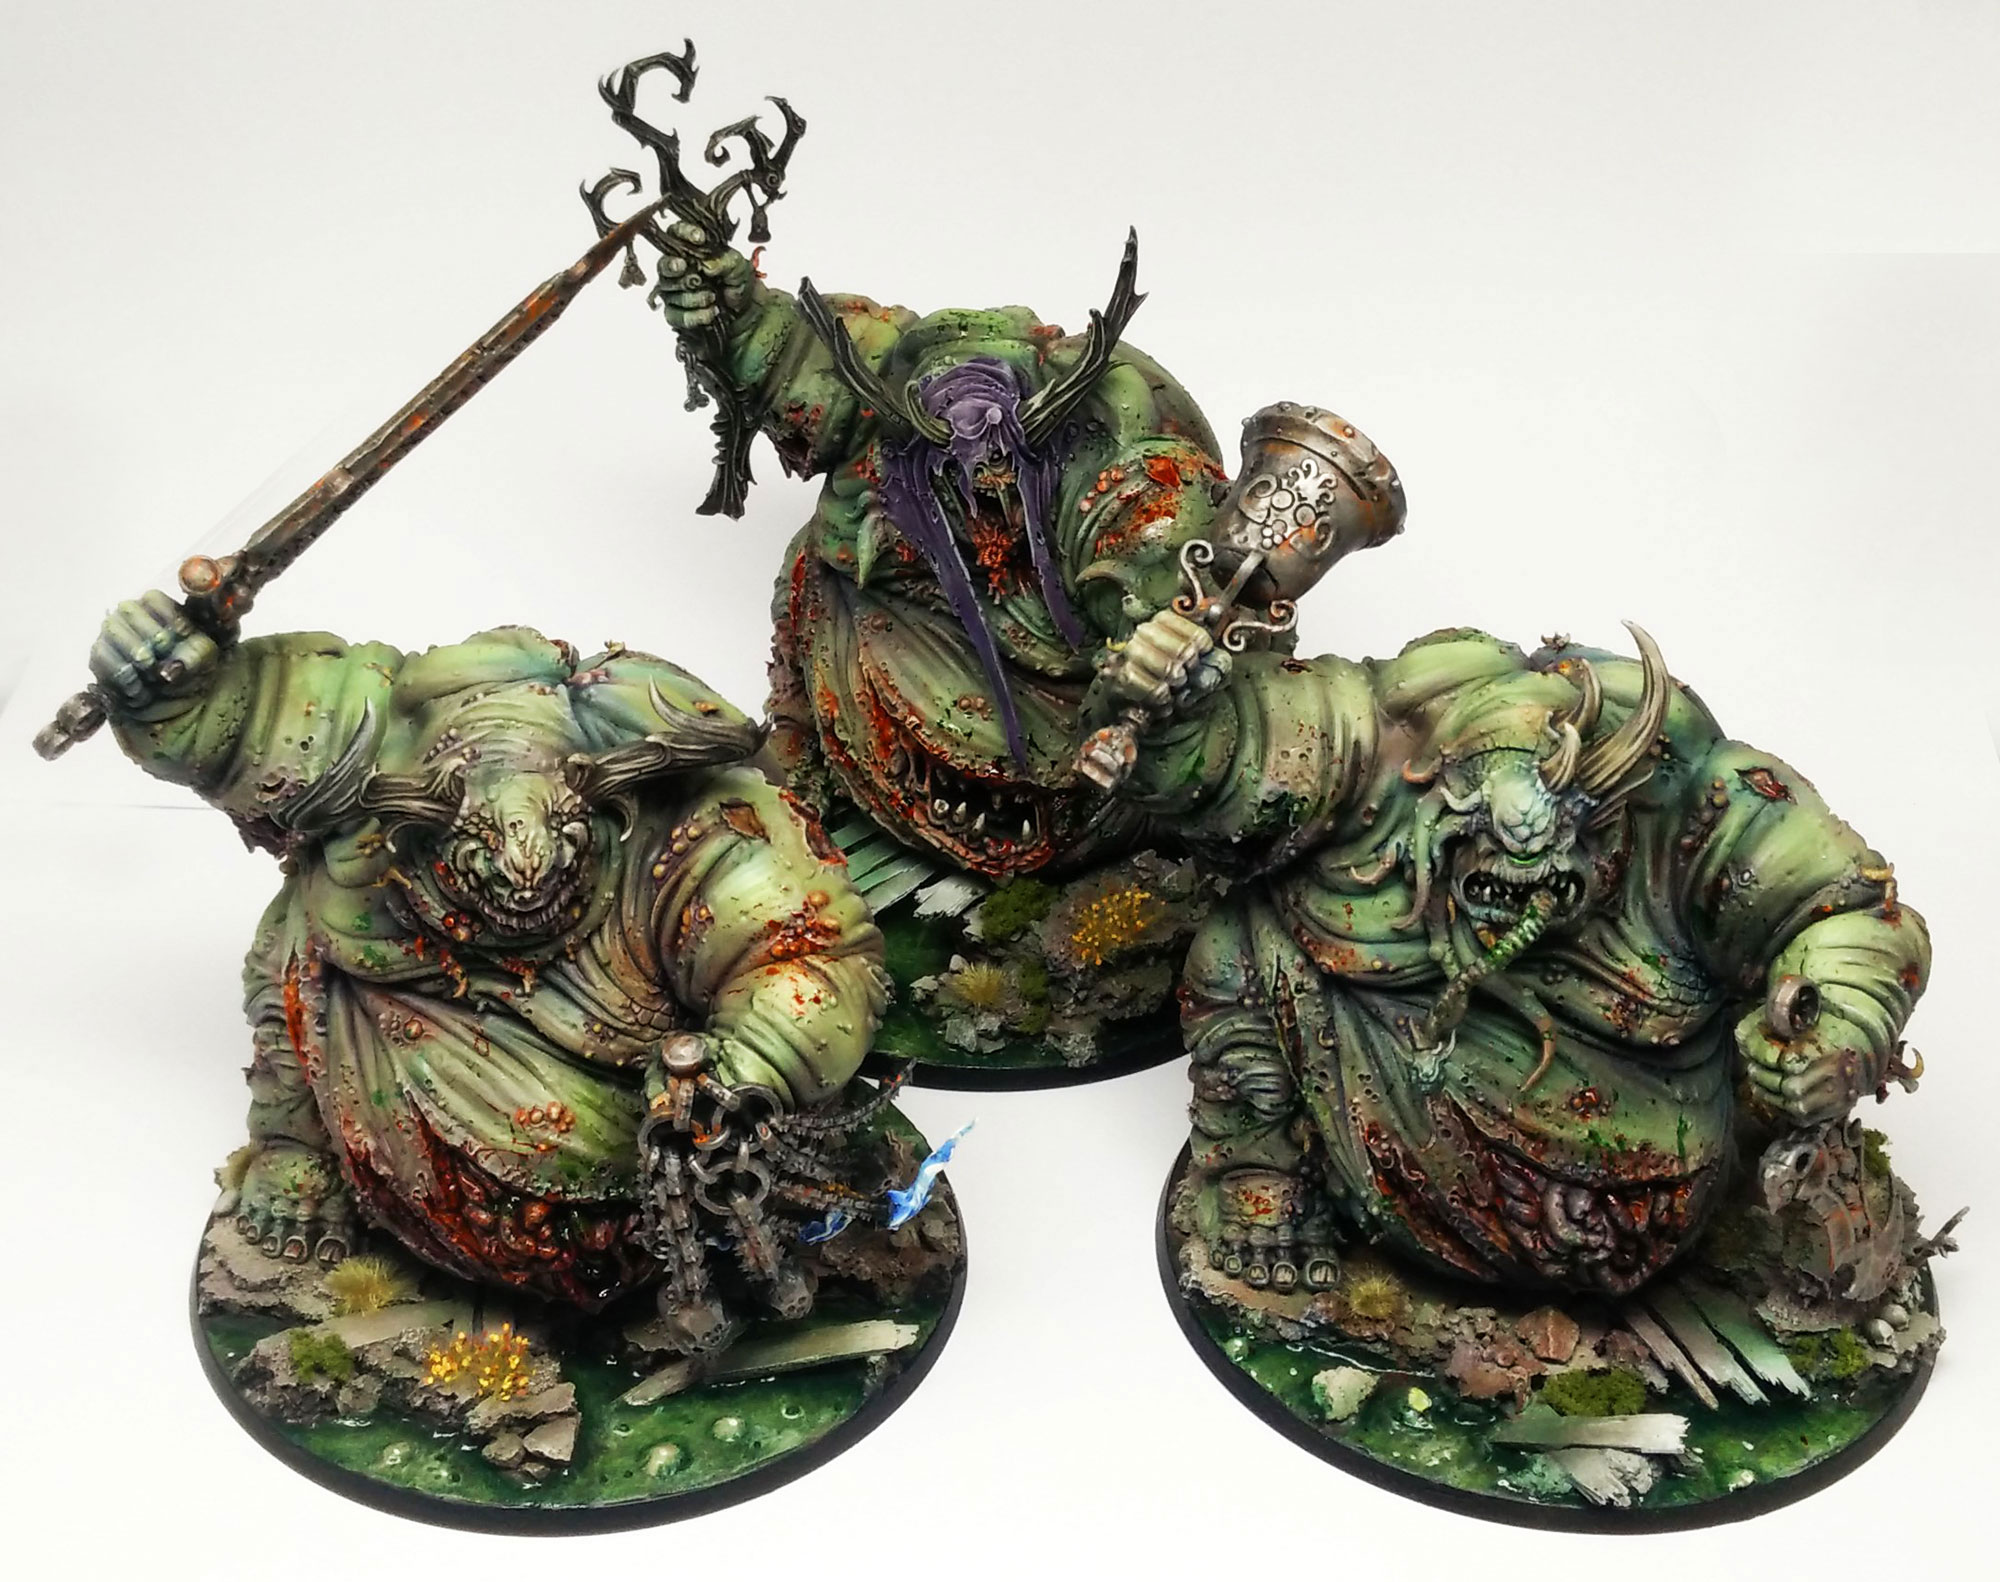 A triumvirate of Nurgle Great Unclean Ones, on swamp bases to add to the atmosphere of blight and decay!